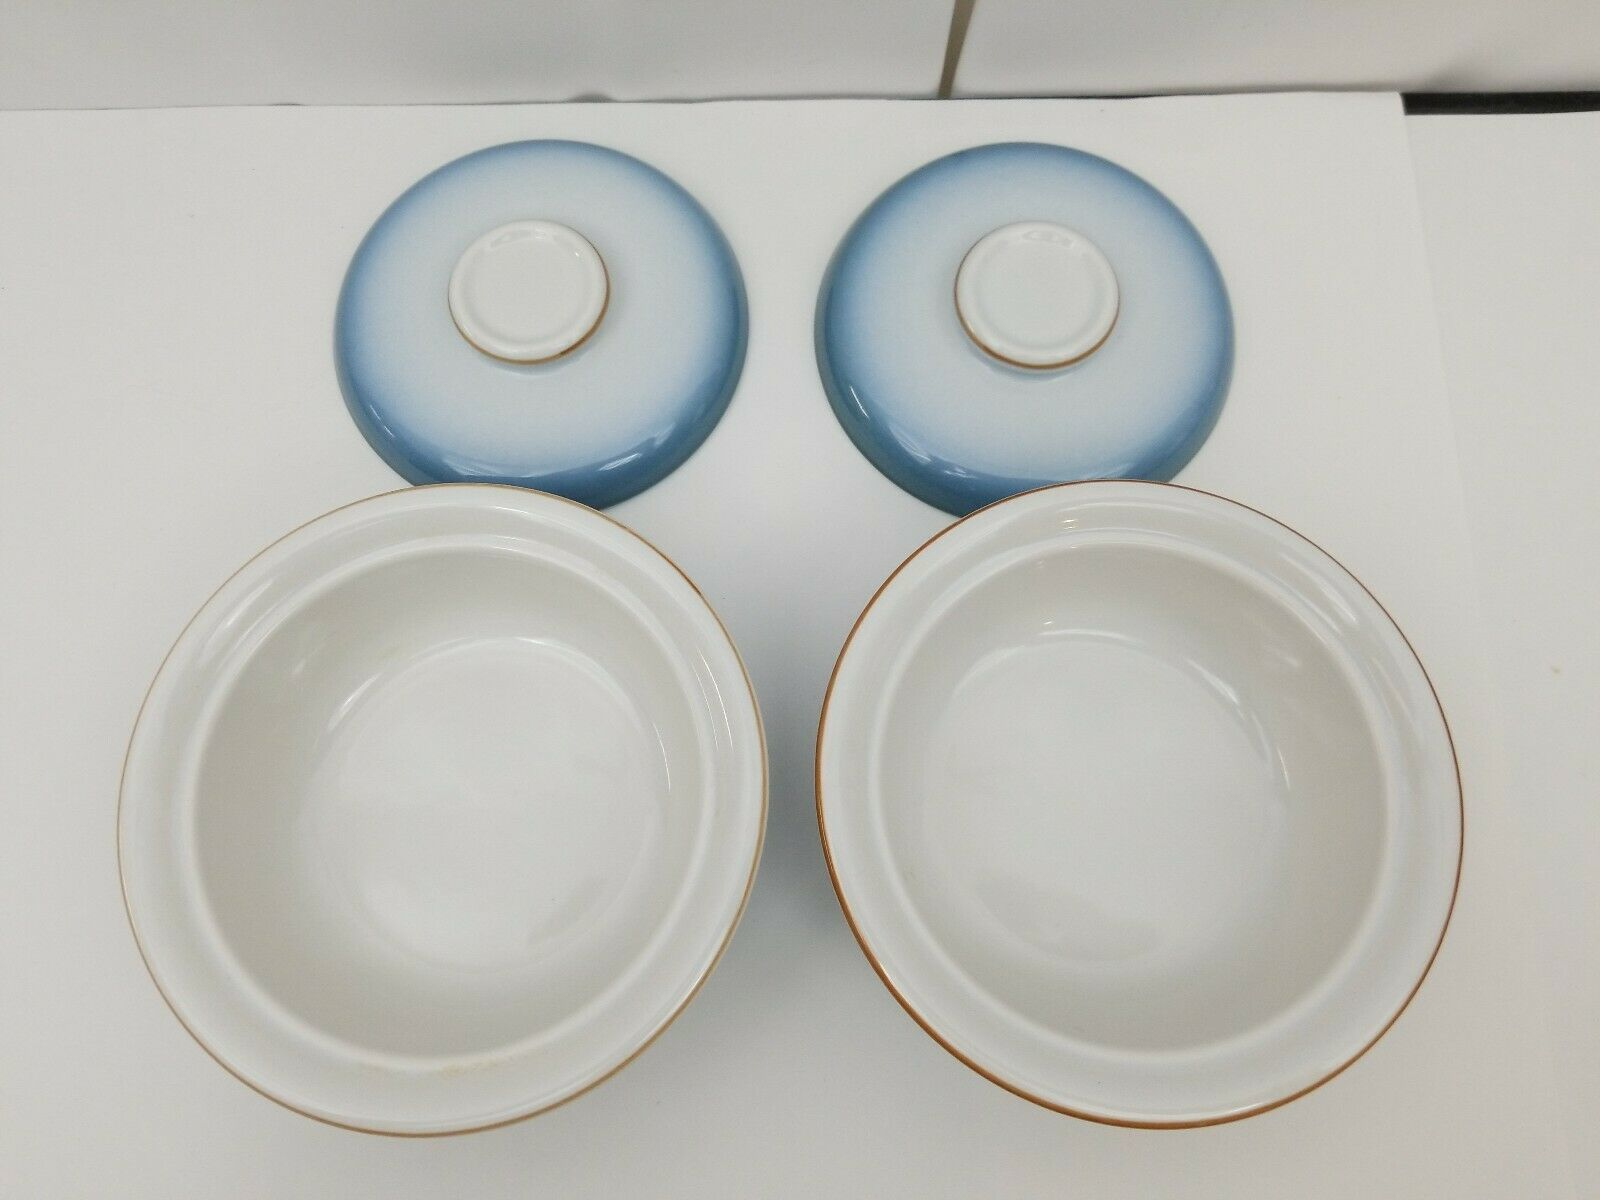 Nikko Gradiance Cereal Soup Bowl Lid Set of 2 Azure Leafette Dish Microwave Safe